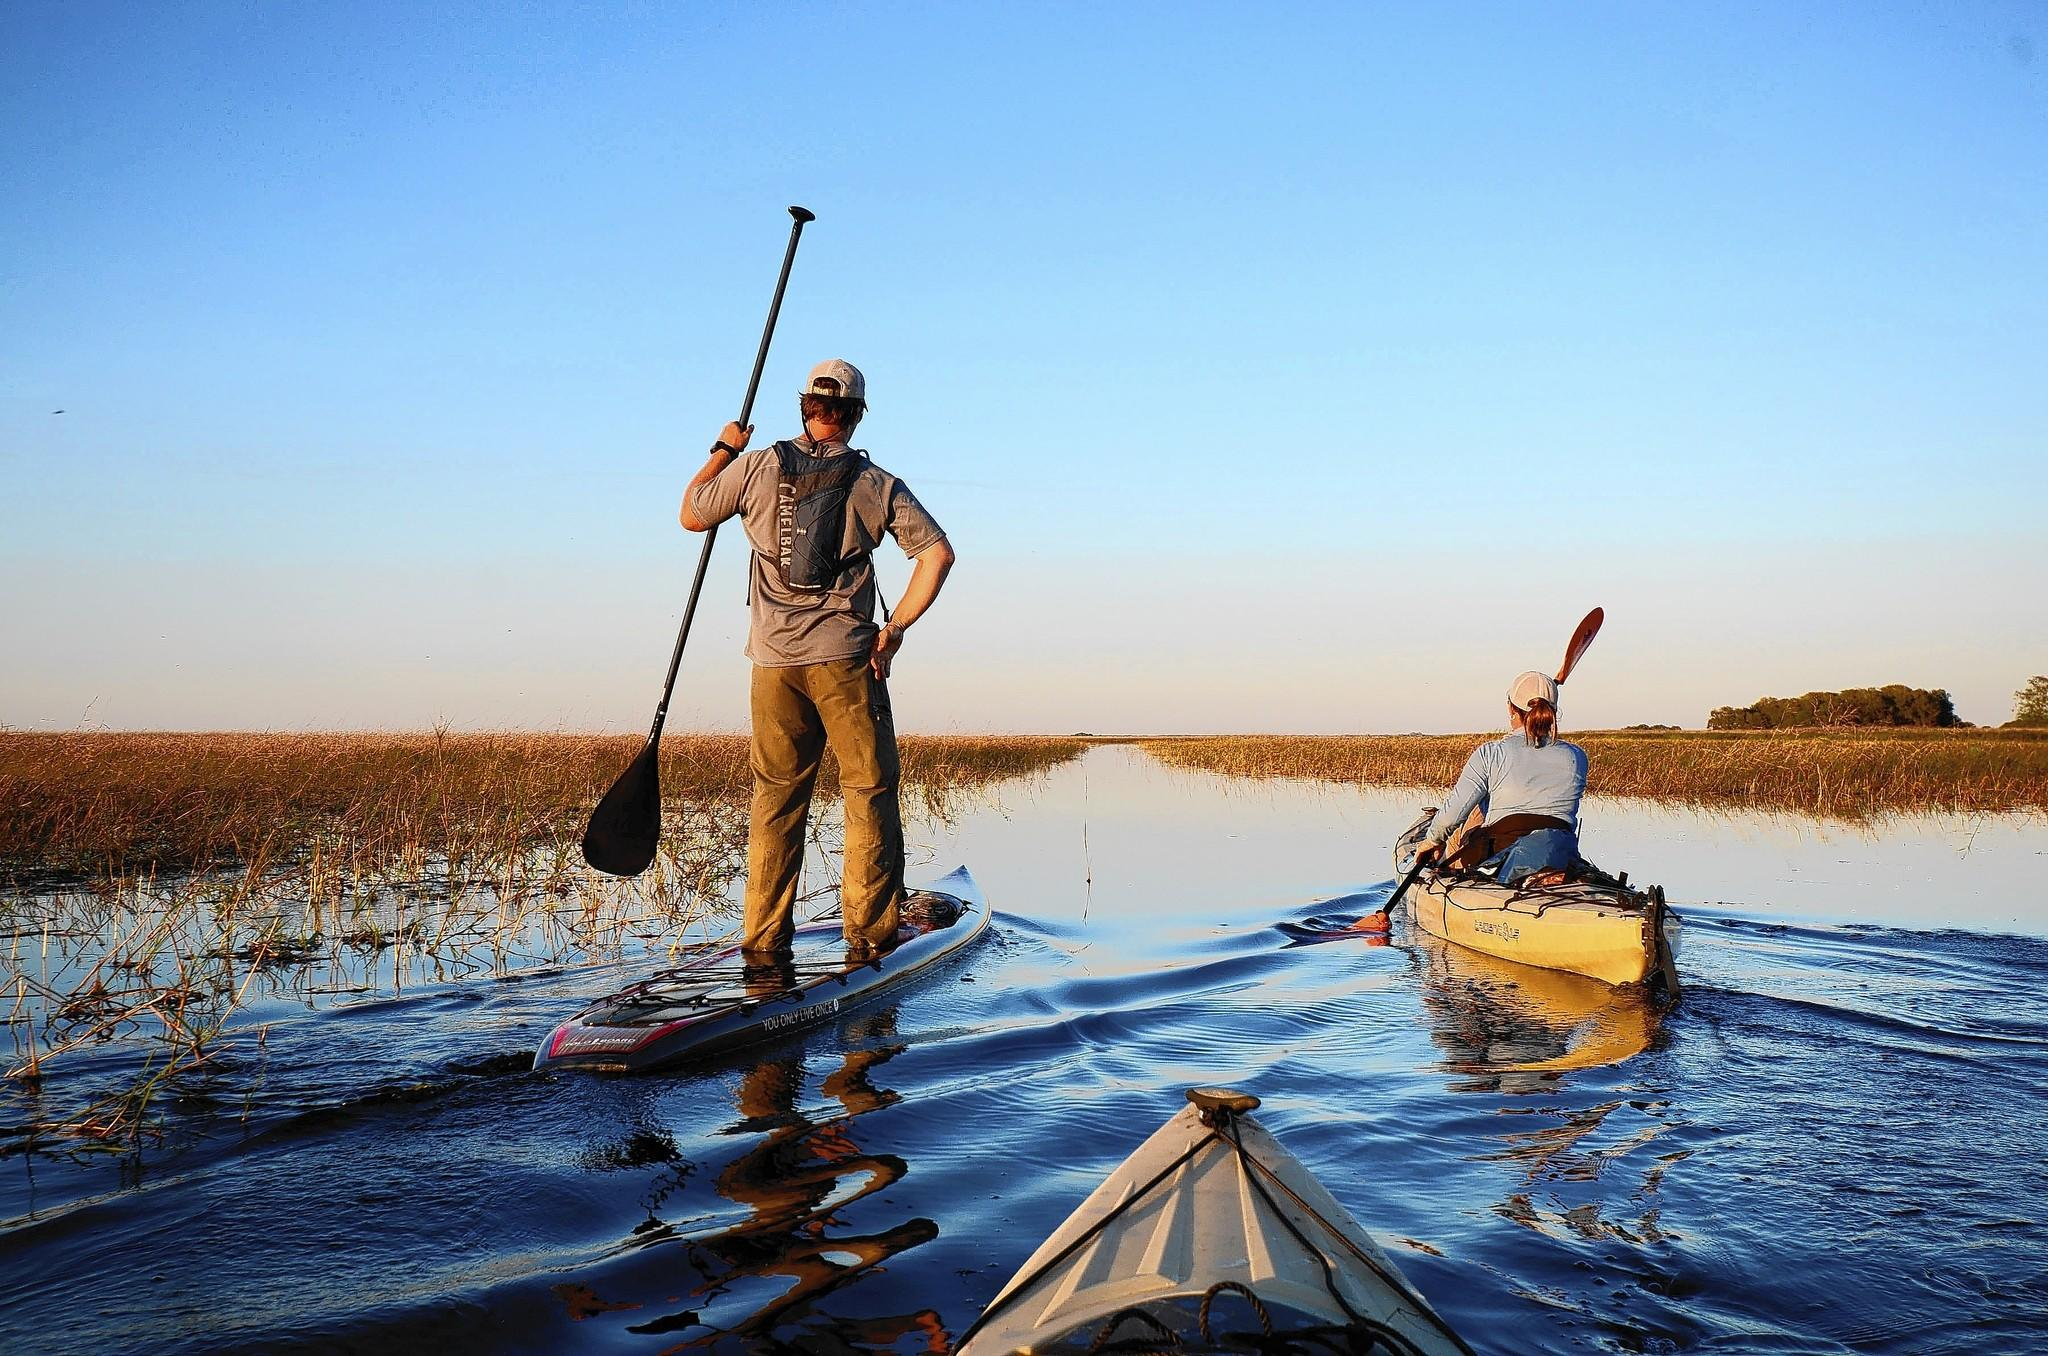 The Florida Wildlife Corridor Expedition included this trip across the Everglades.